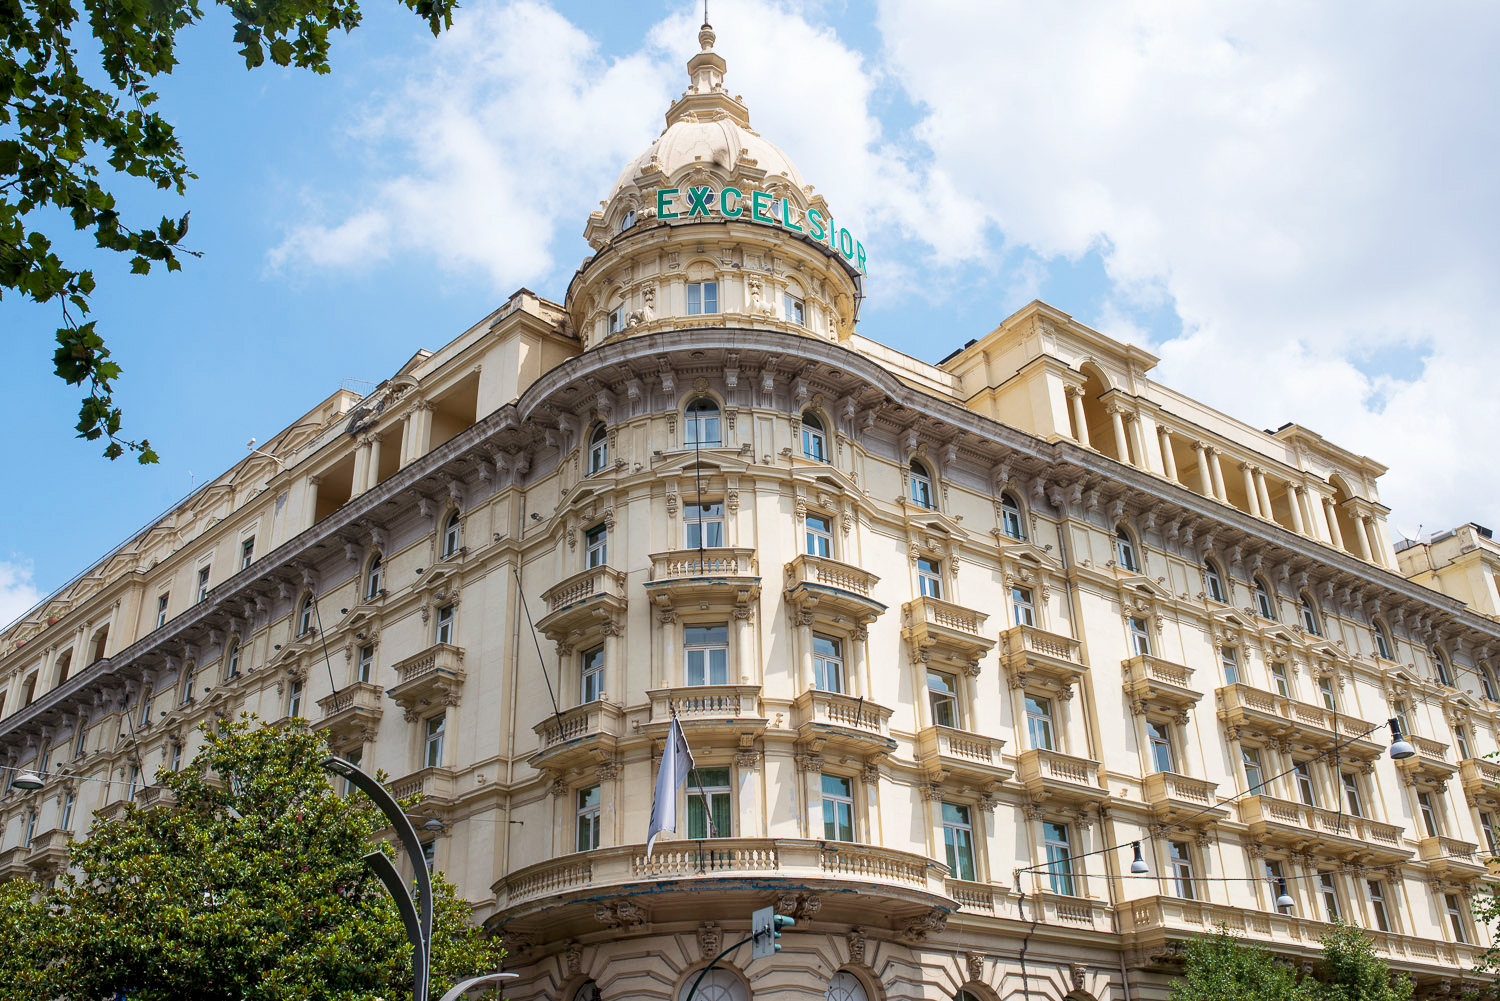 wast3 – World's Most Expensive Luxurious Hotels